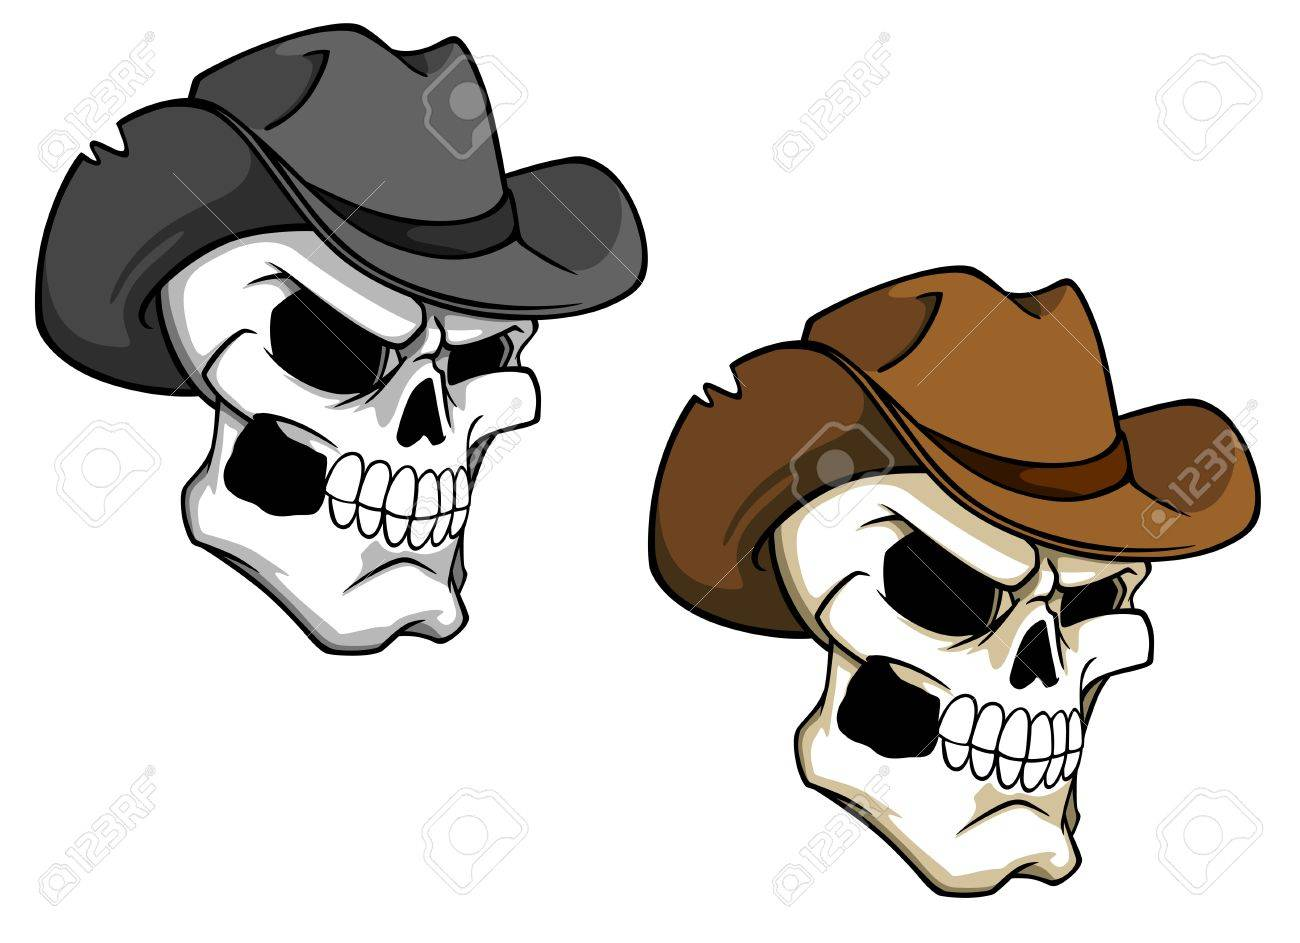 Western Outlaw Tattoo hat for tattoo or mascot